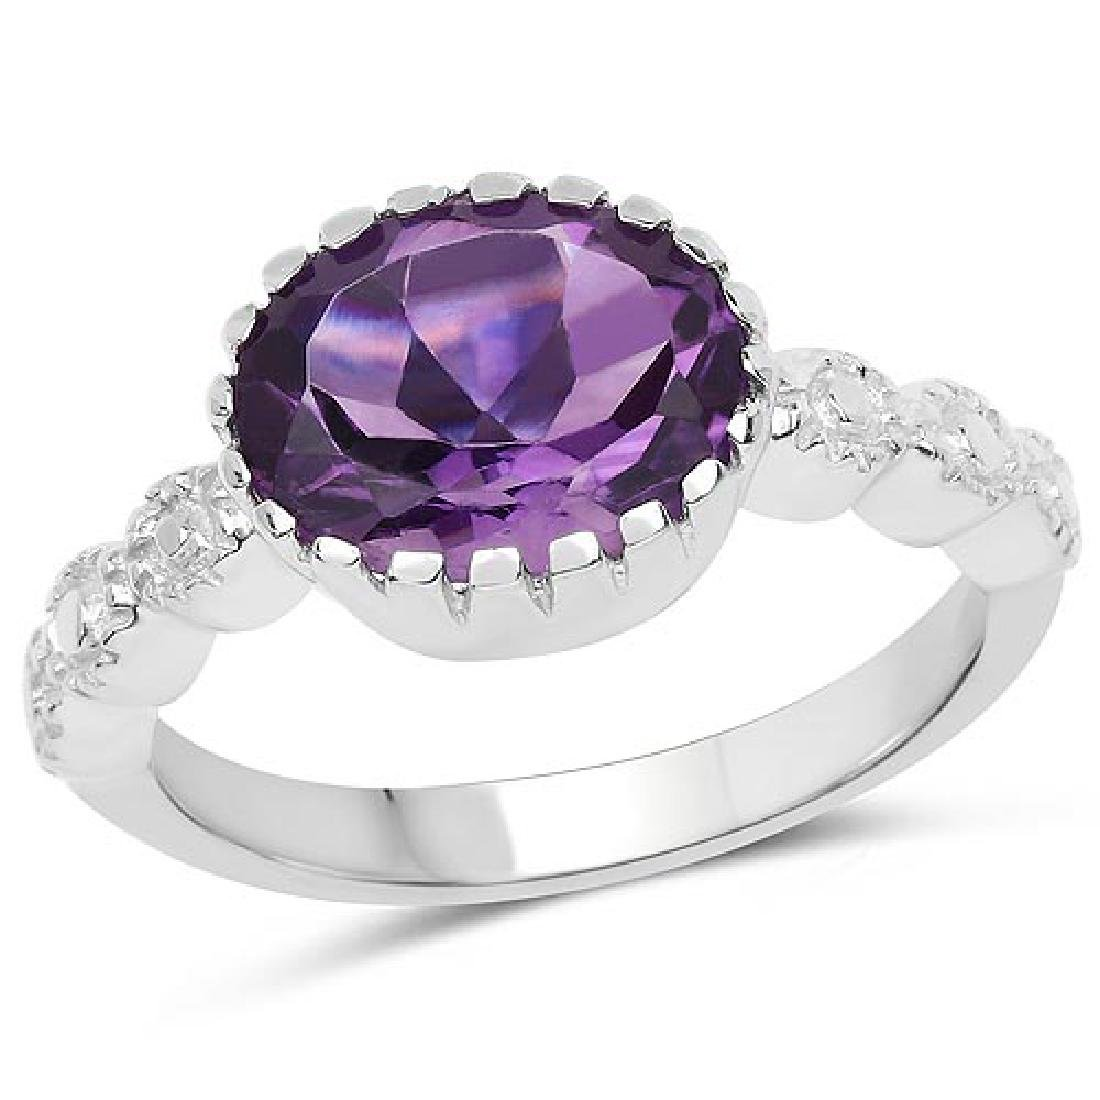 2.15 Carat Genuine Amethyst .925 Sterling Silver Ring